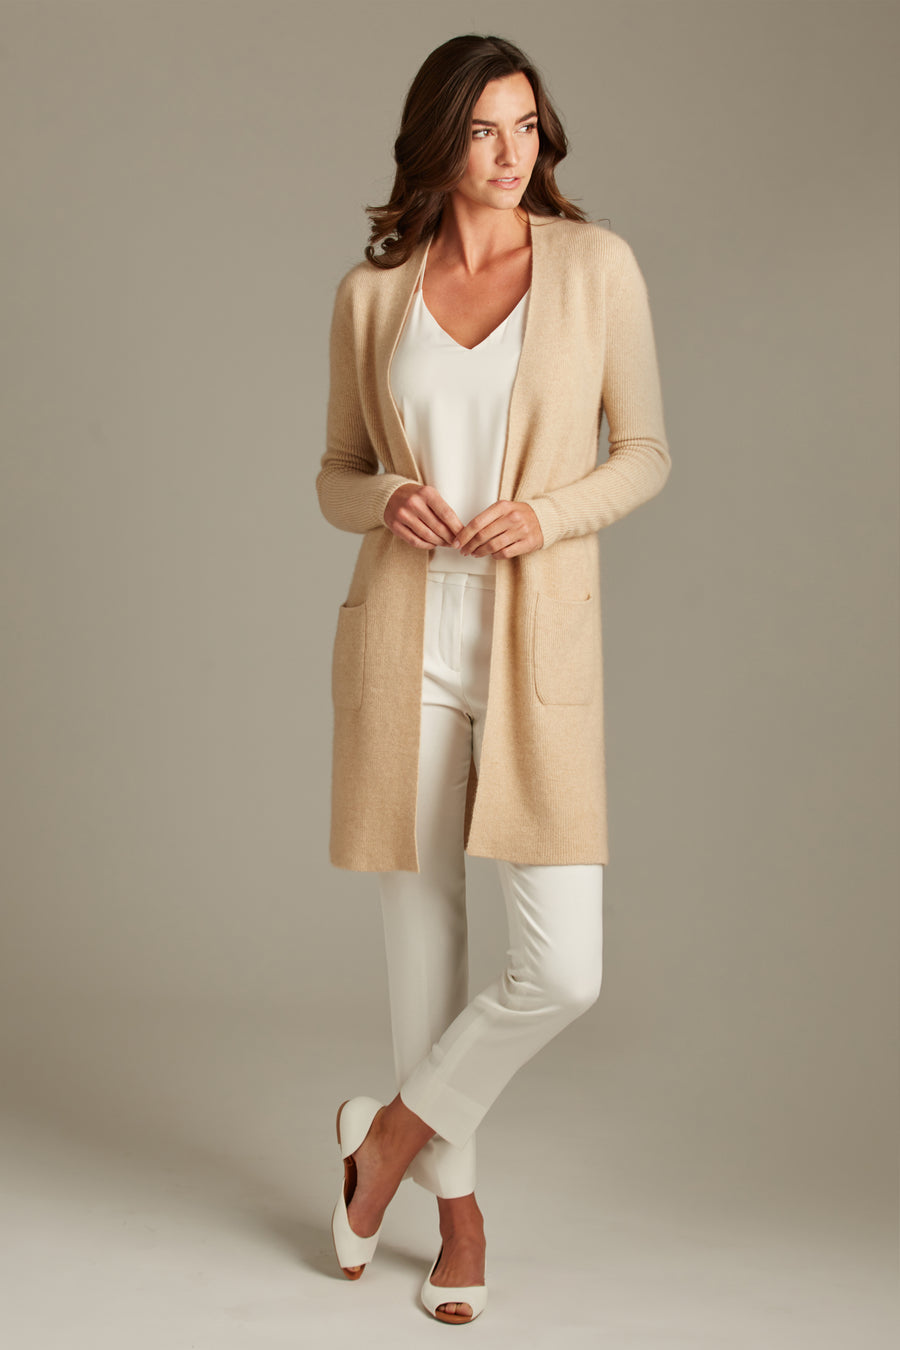 pine cashmere morgan women's 100% pure organic cashmere cardigan sweater in tan beige